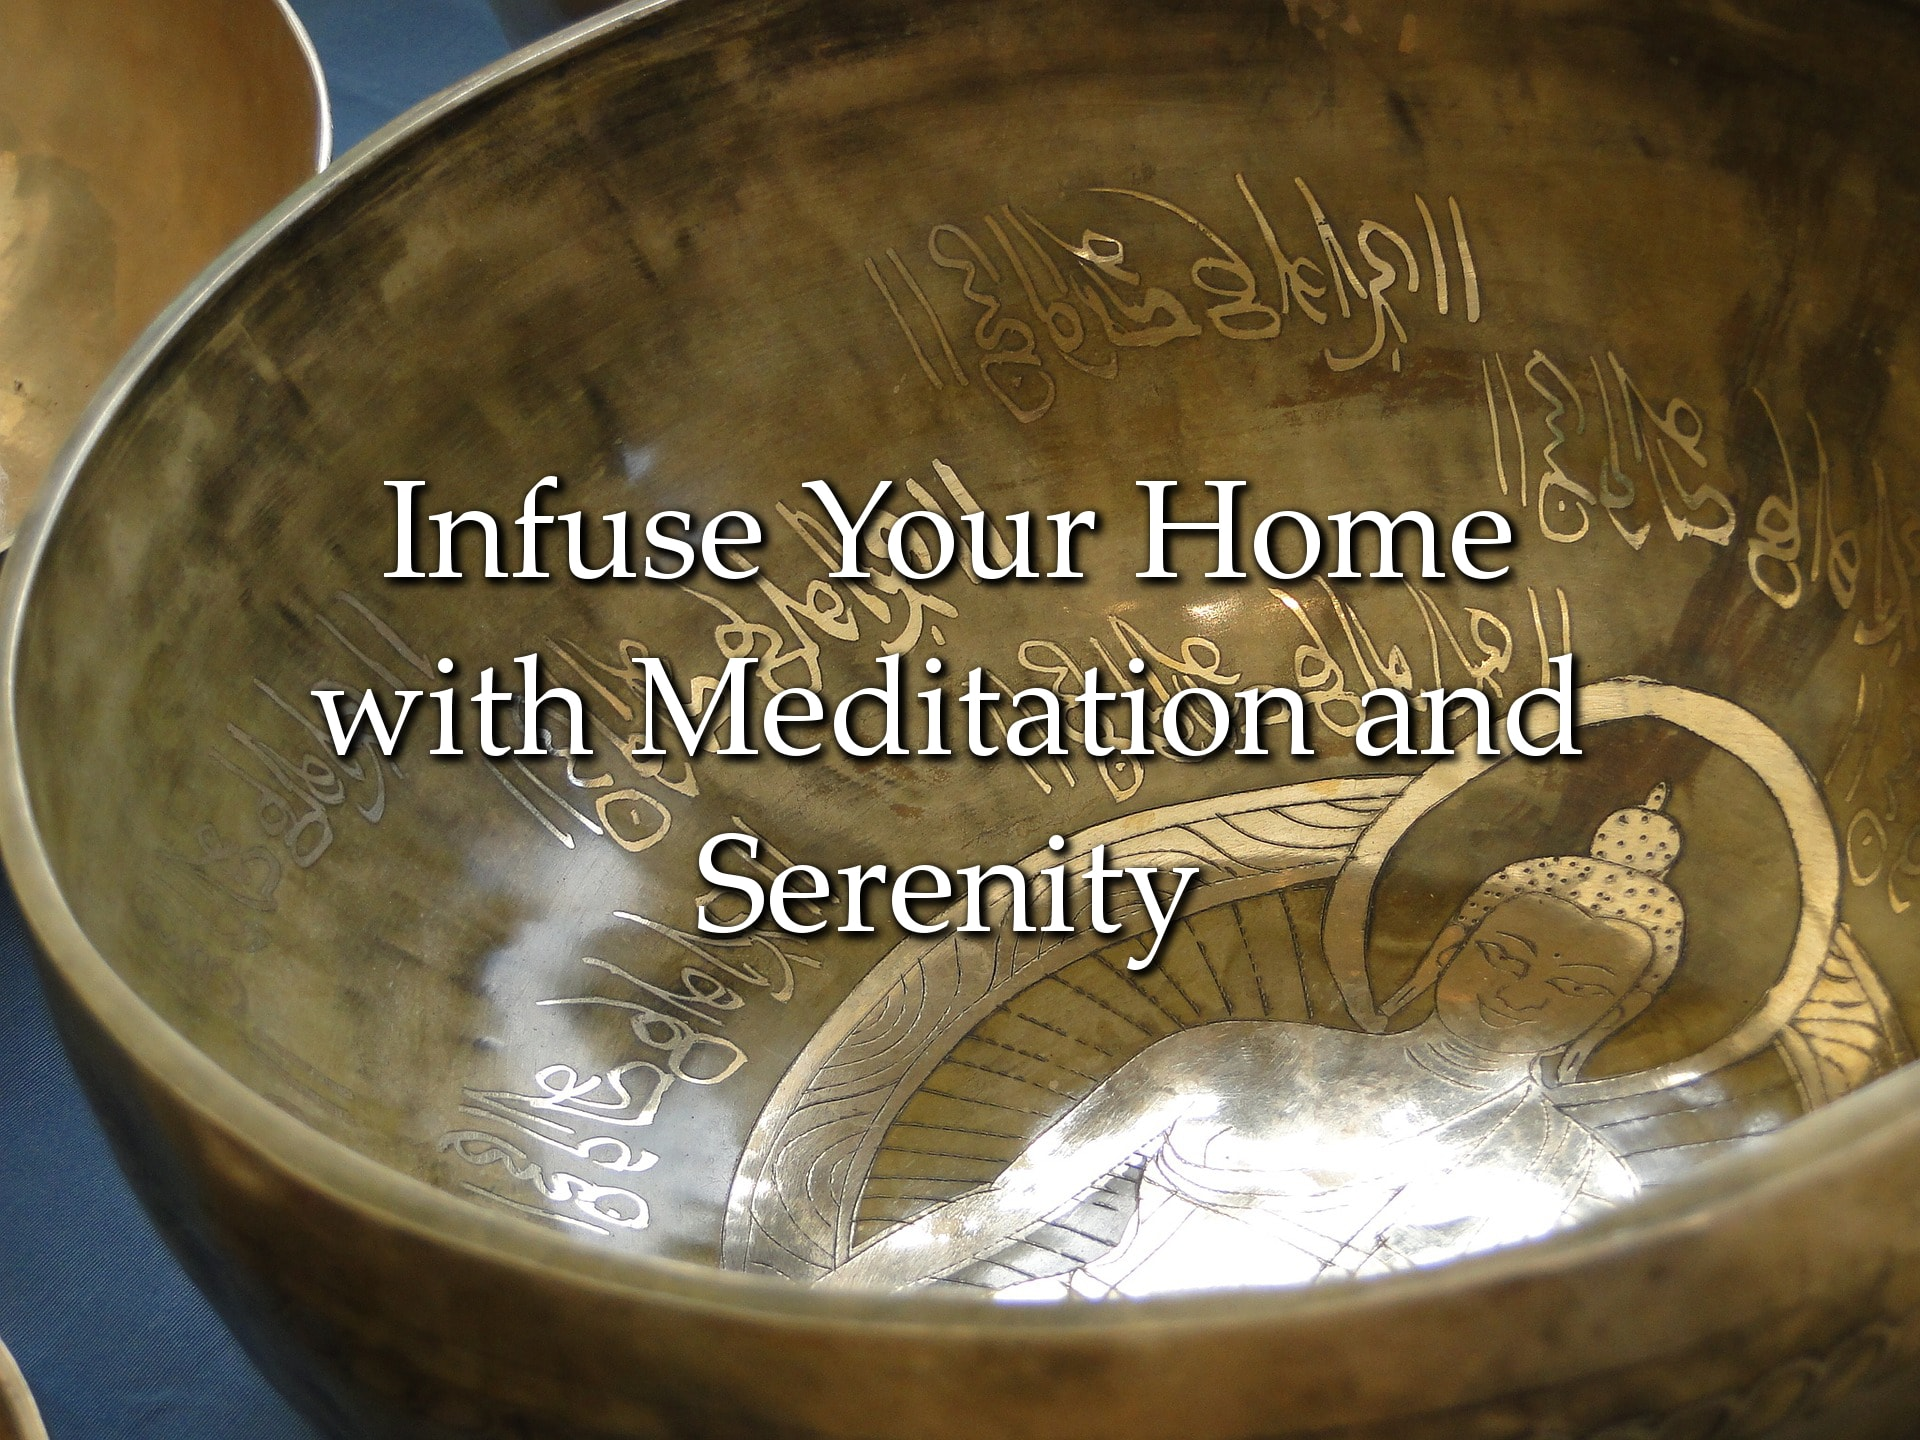 Top 10 Meditation Products for a Perfectly Serene Home